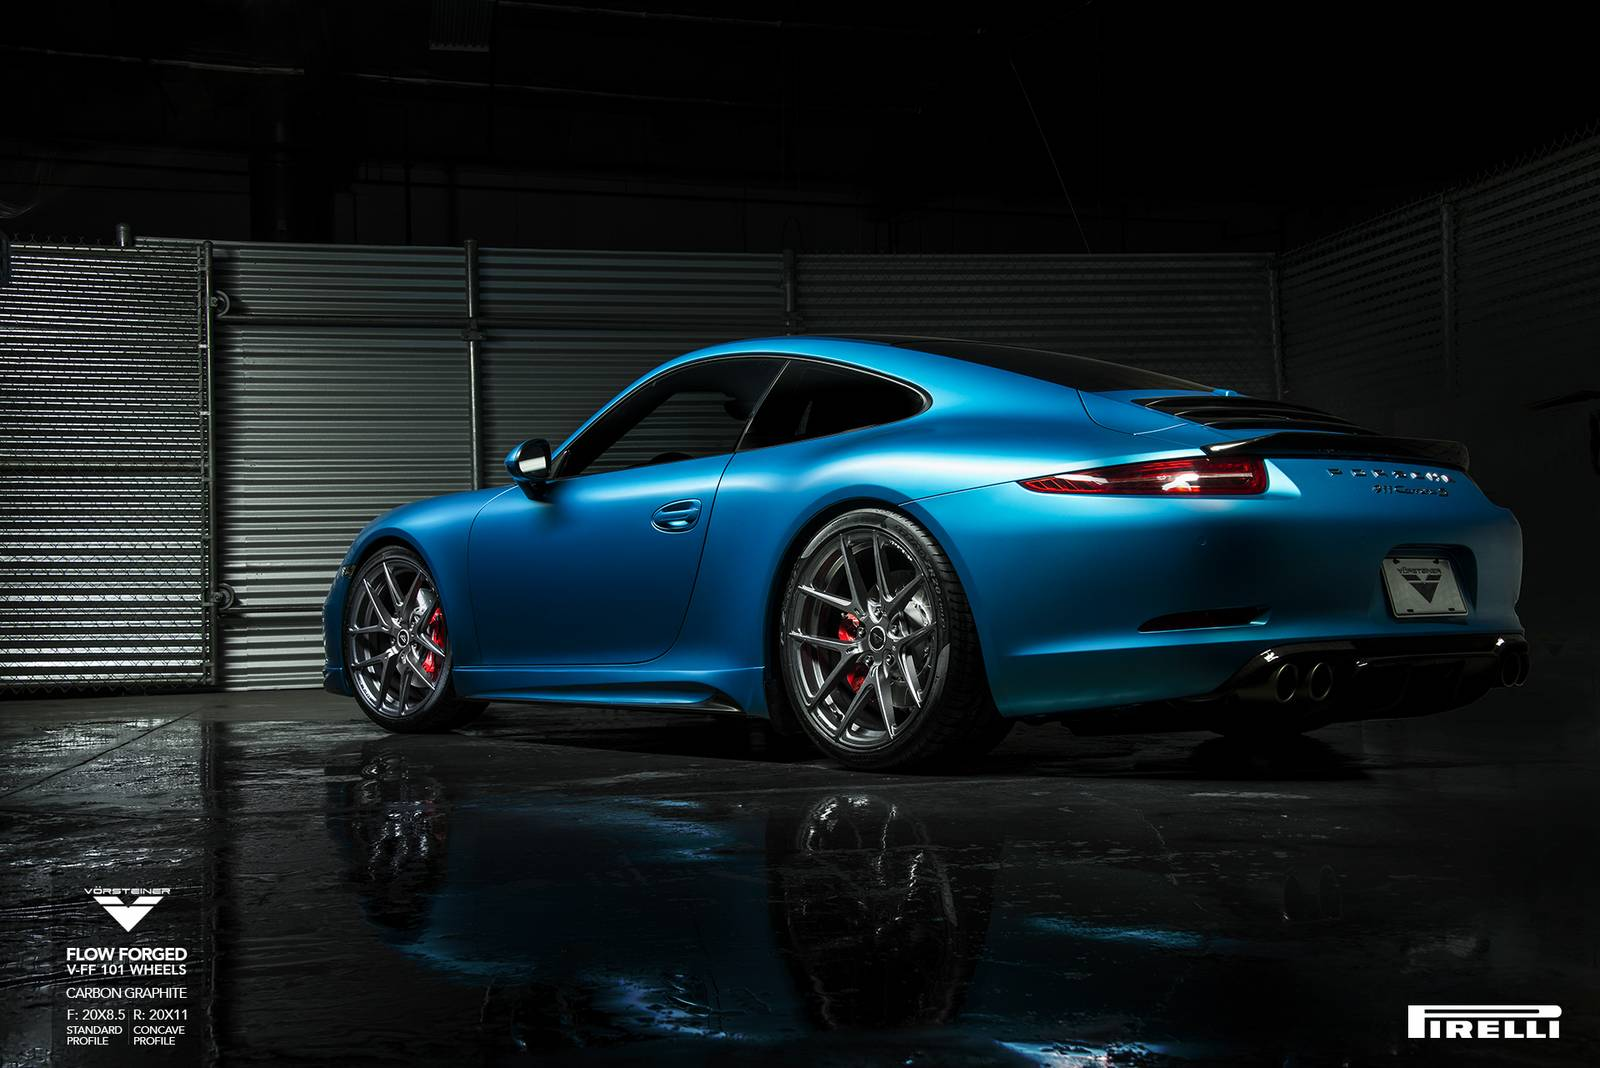 Porsche 991 Carrera S Lowered On V Ff 101 Vorsteiner